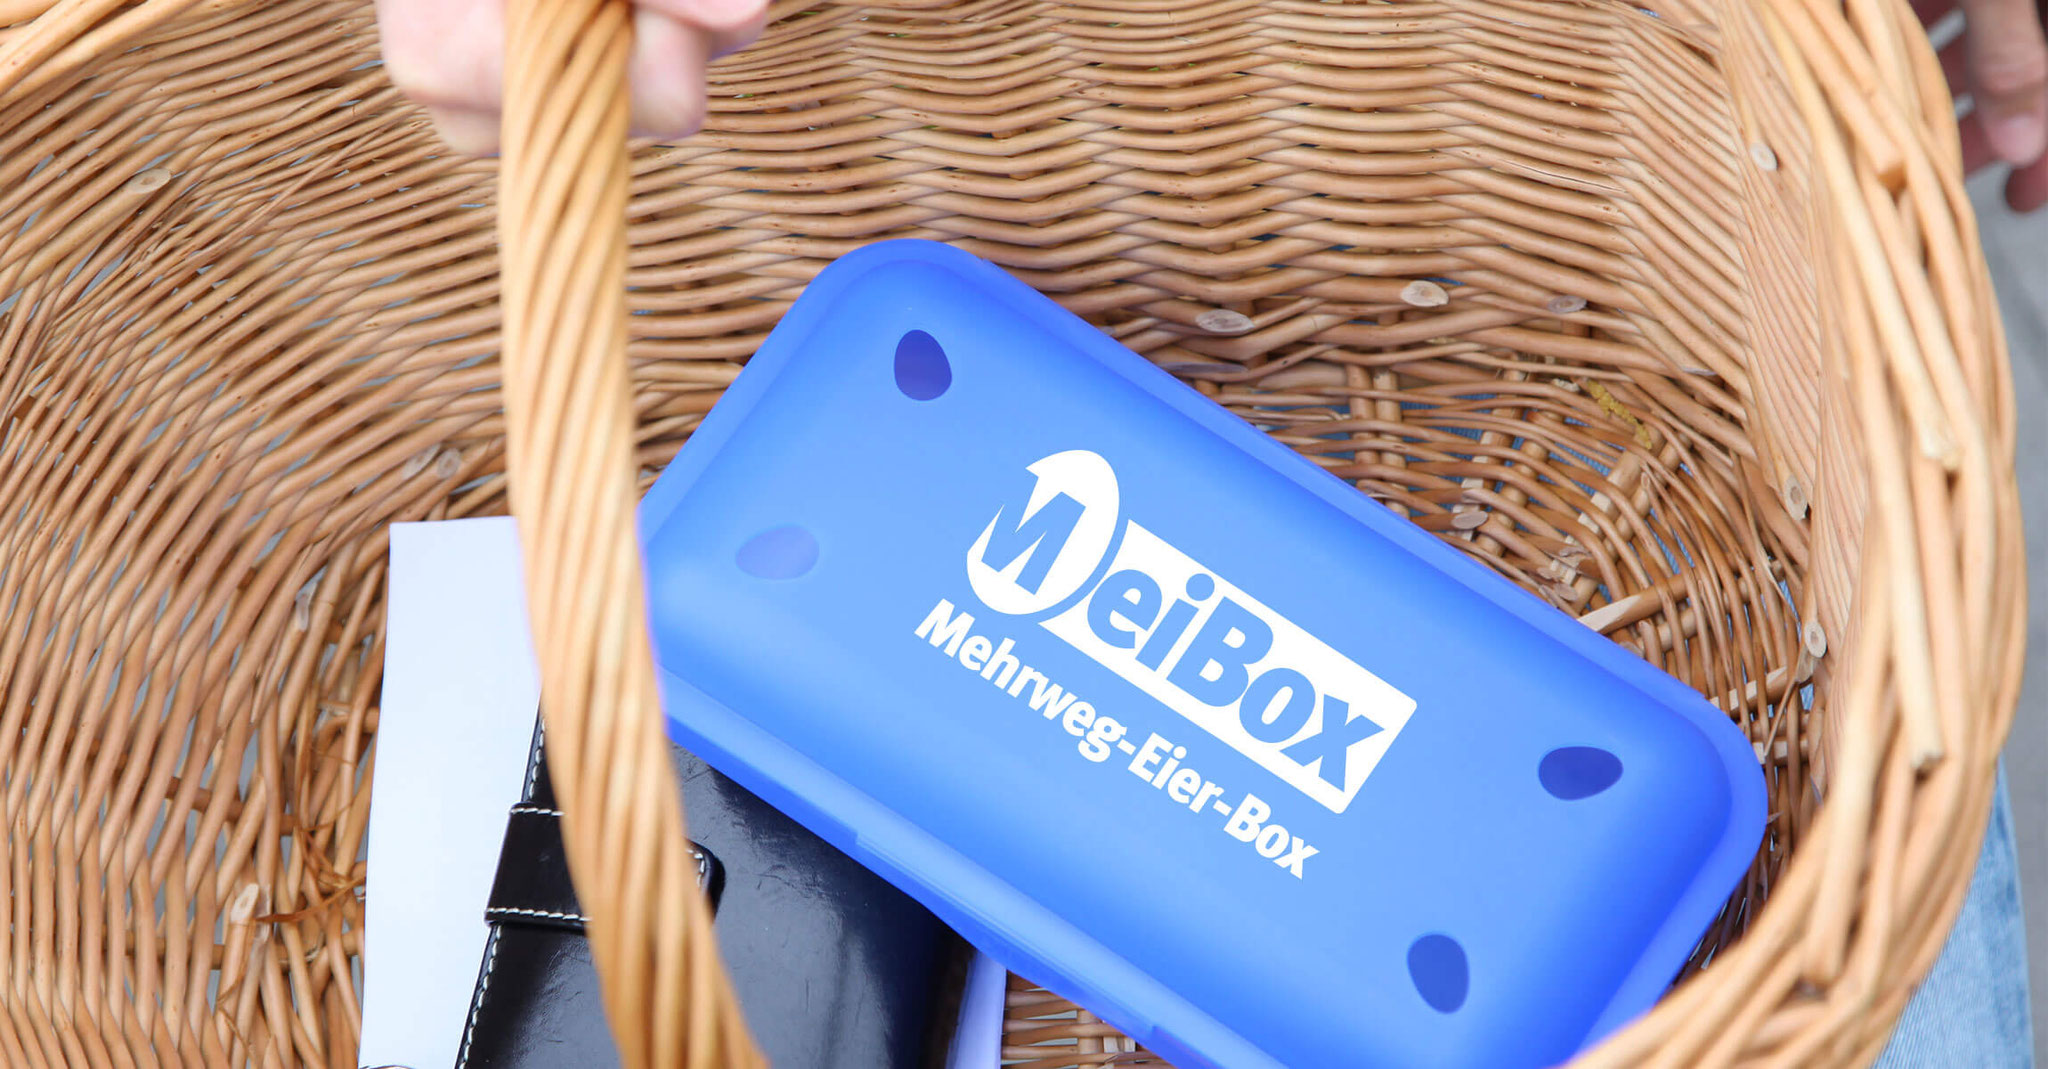 Next time you go shopping, take your empty MeiBox with you.